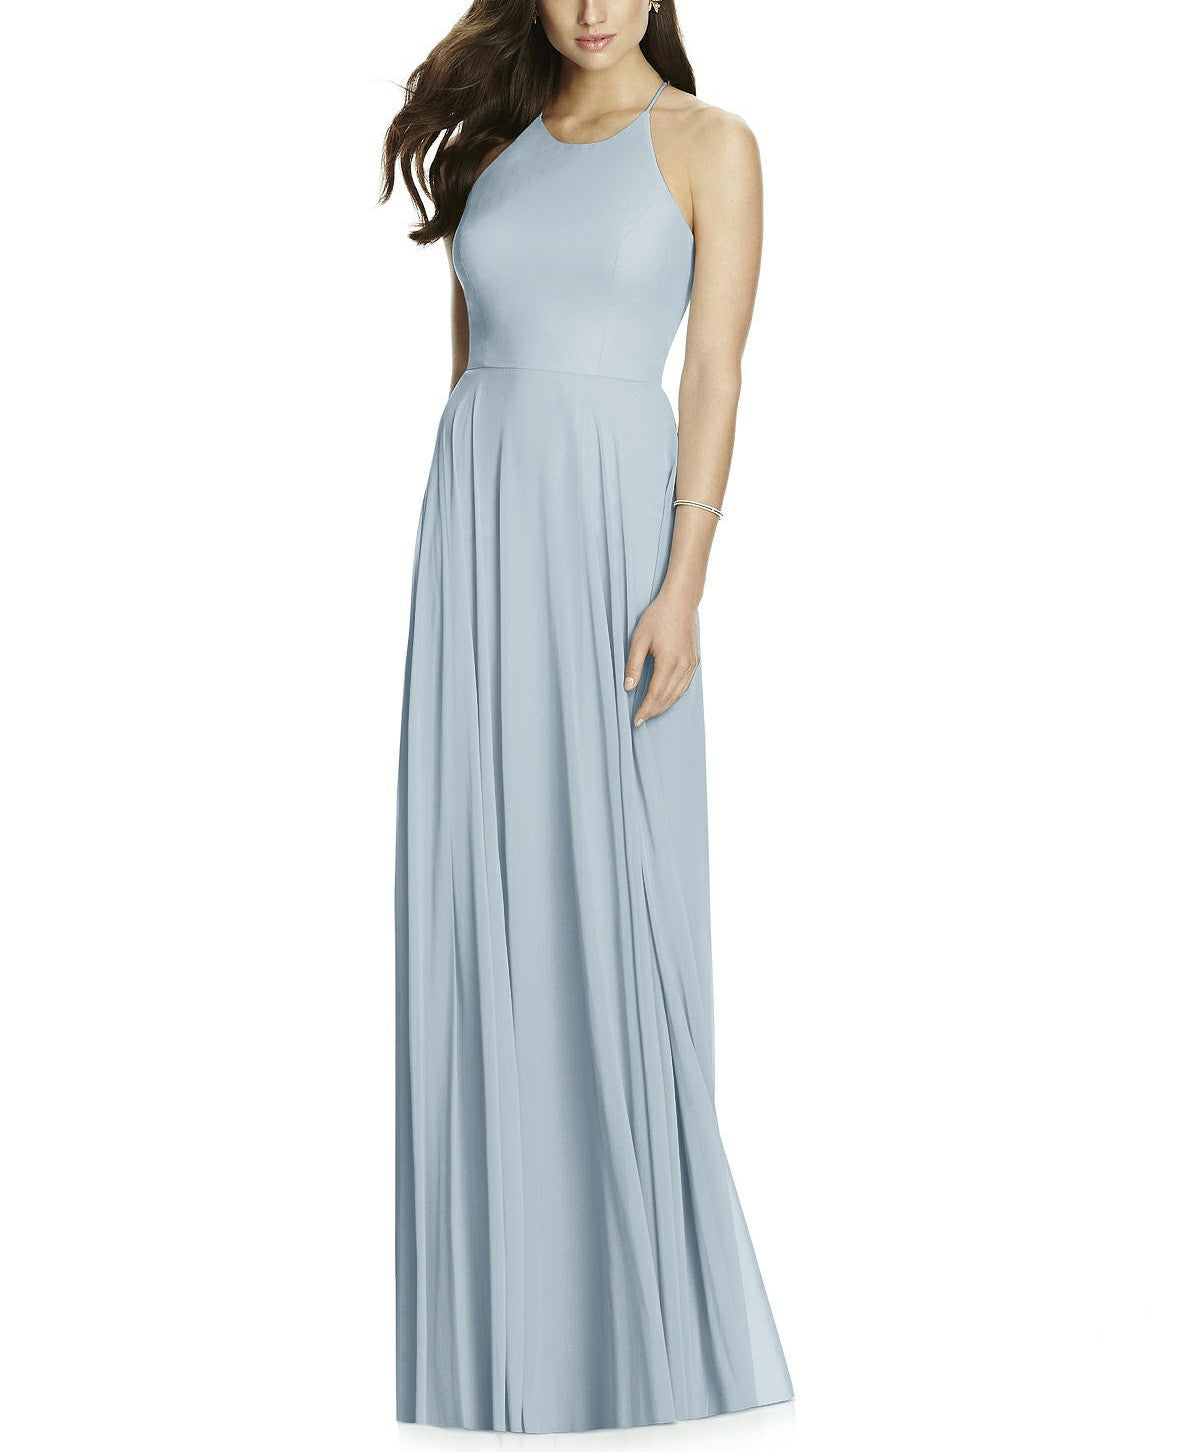 Dessy collection style 2988 bridesmaid dress brideside dessy collection style 2988 ombrellifo Image collections